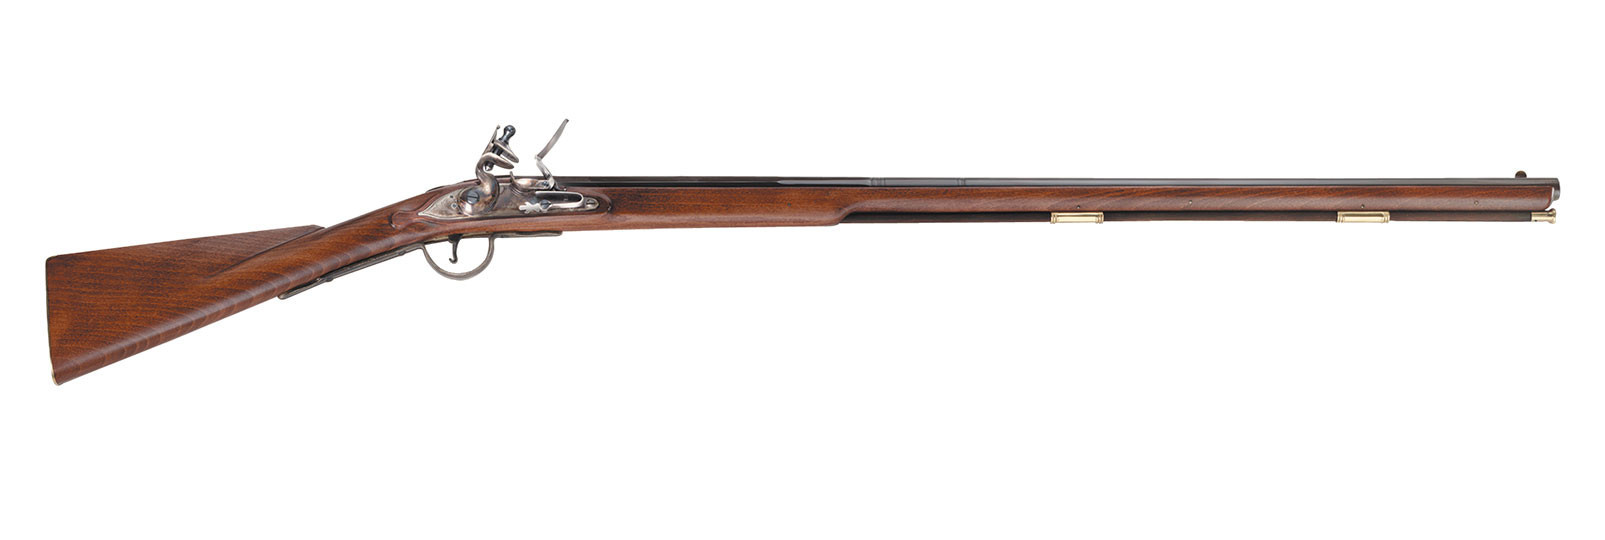 Indian Trade Musket Rifle